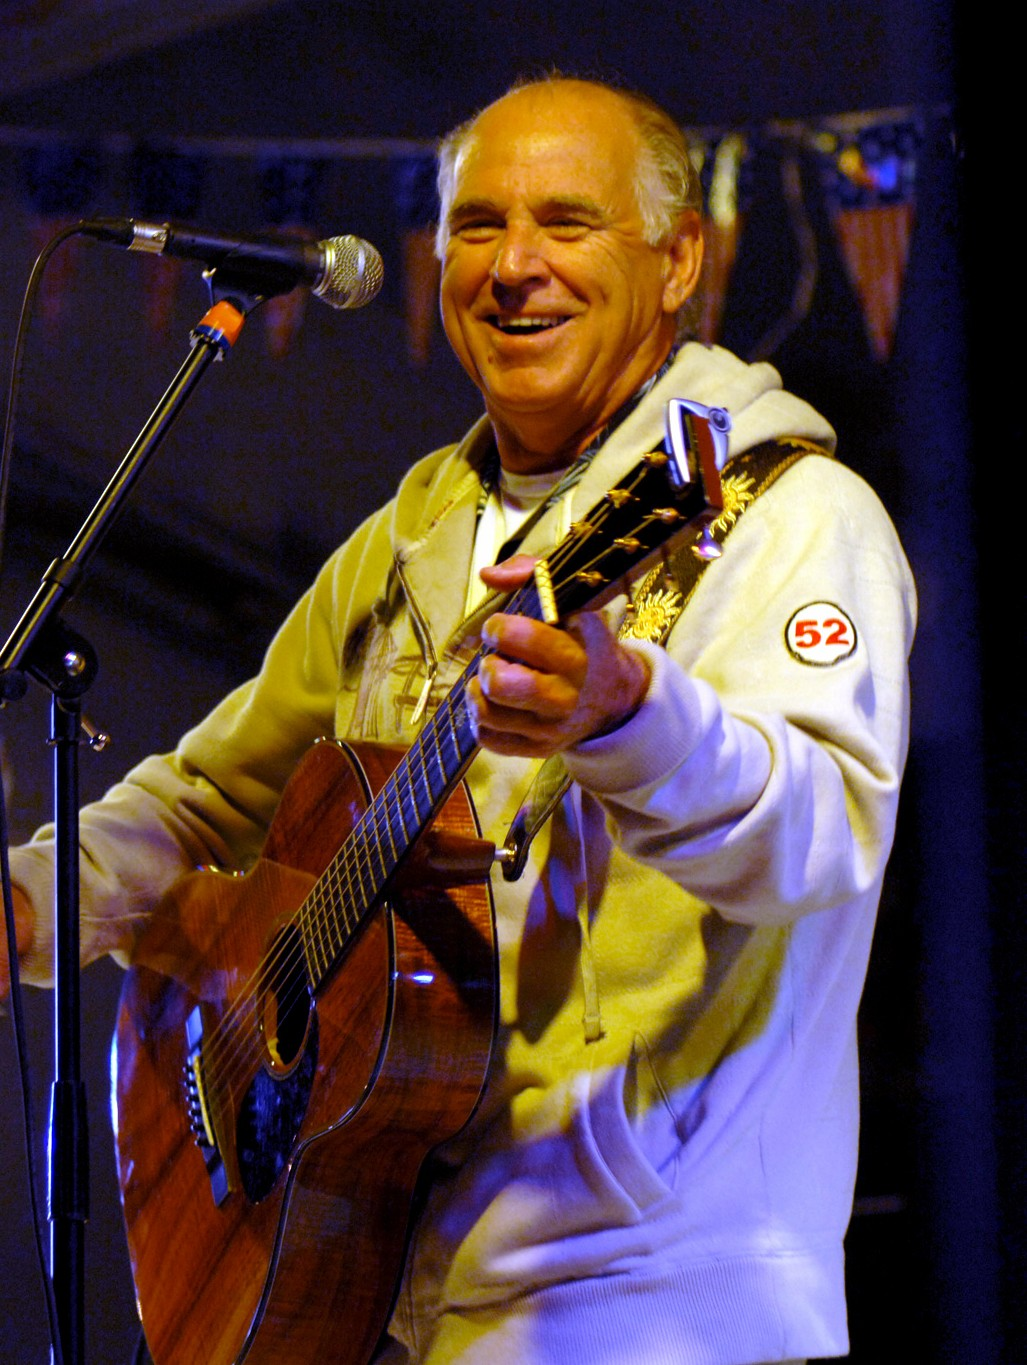 Jimmy Buffett - Wikipedia